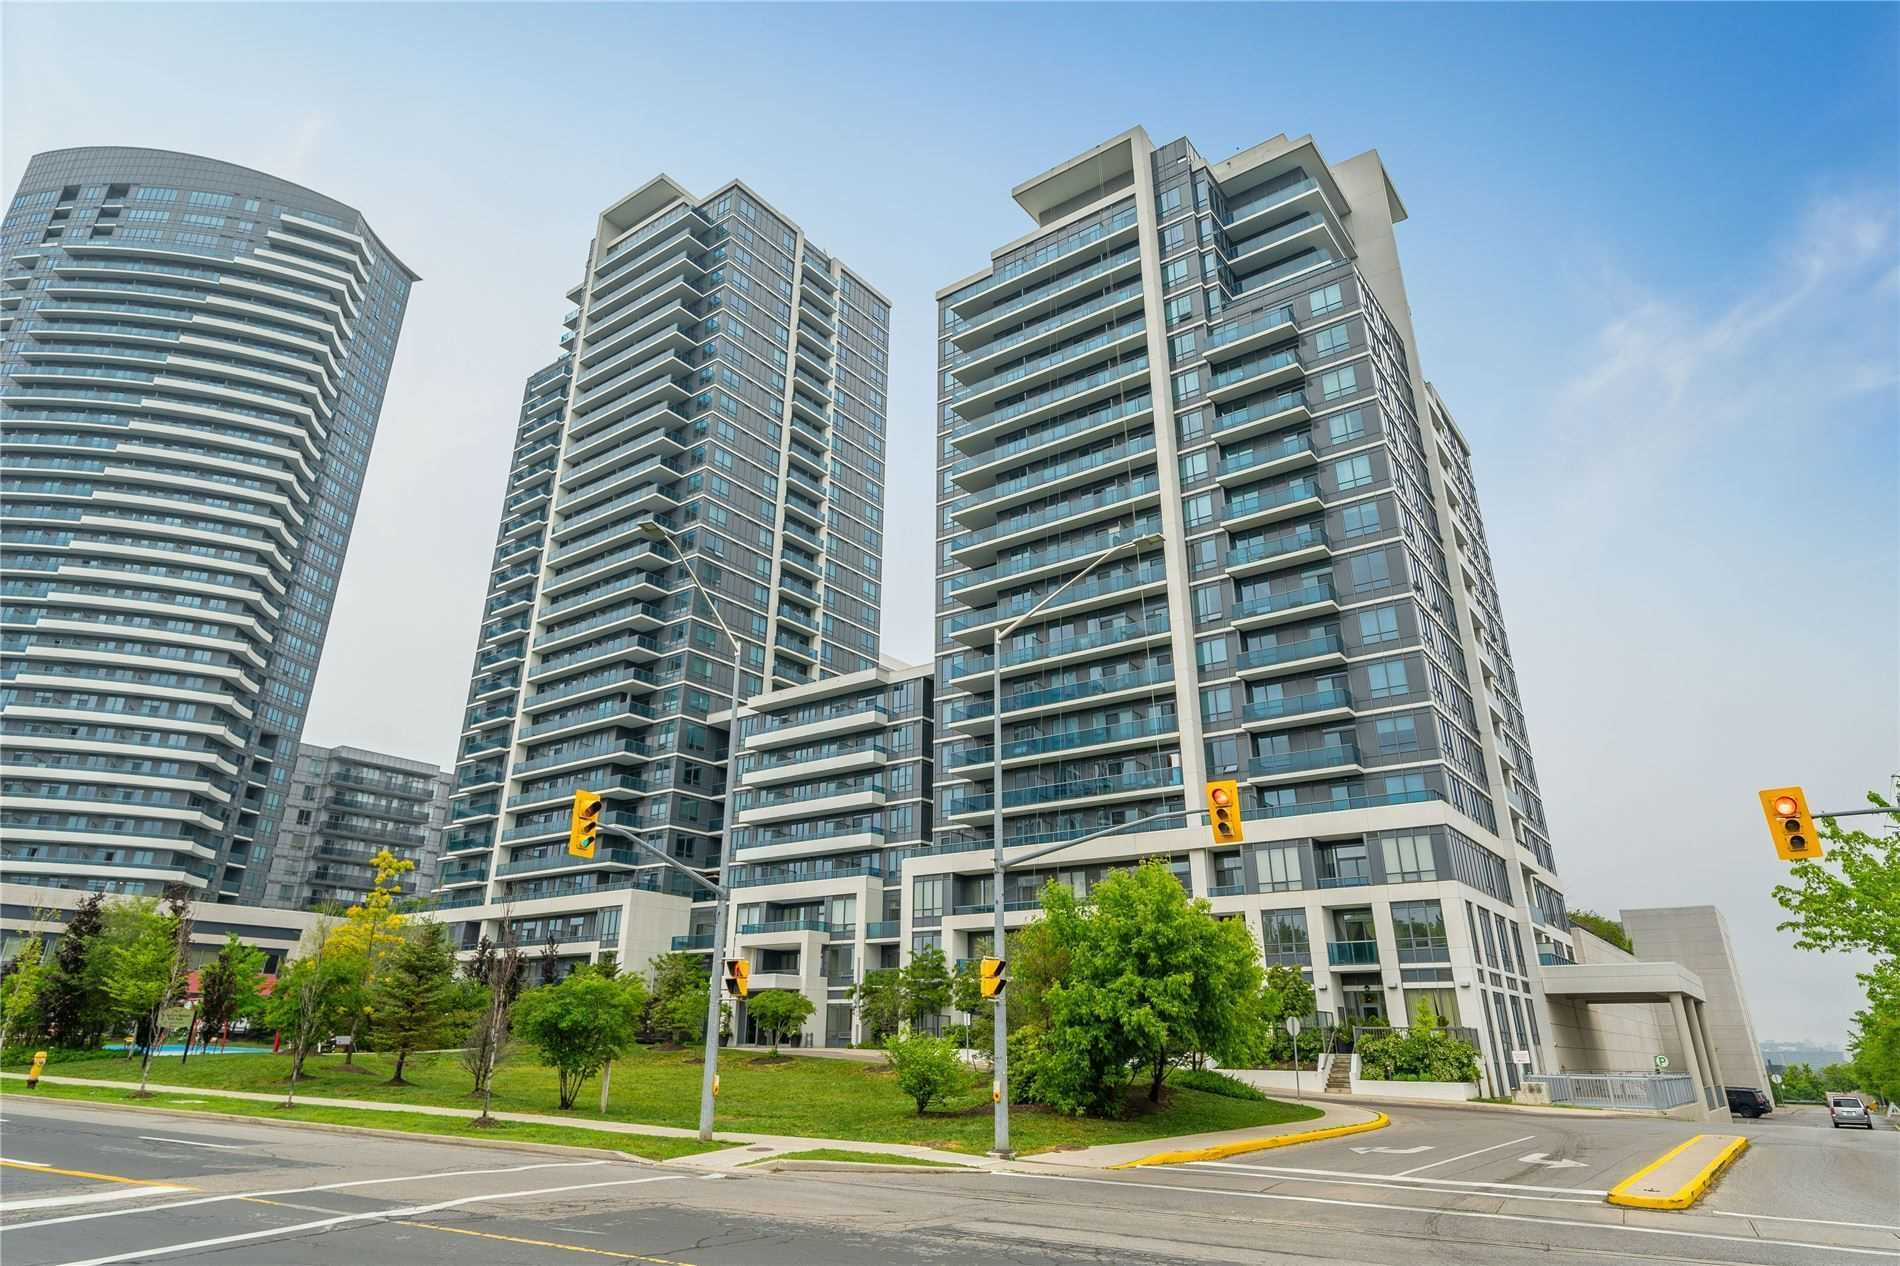 7167 Yonge St, unit 1005 for sale in Toronto - image #1